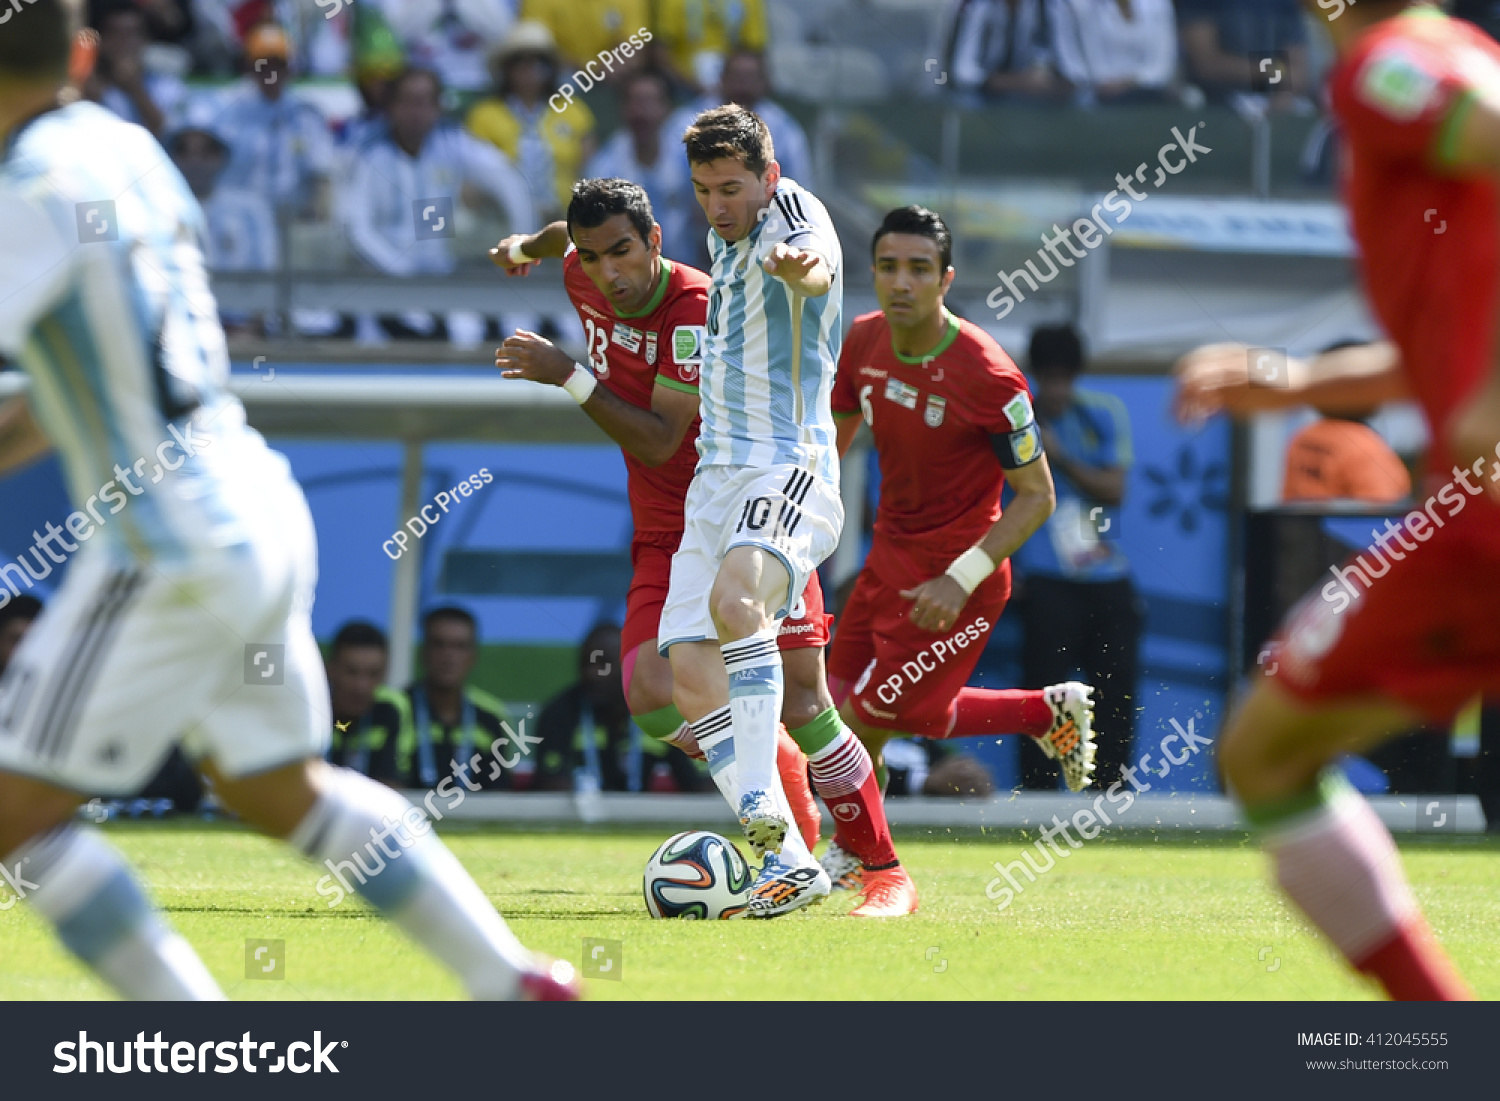 Belo Horizonte Brazil June 21 2014 Lionel MESSI of Argentina during the FIFA 2014 World Cup Argentina is facing Iran in the Group F at Minerao Stadium